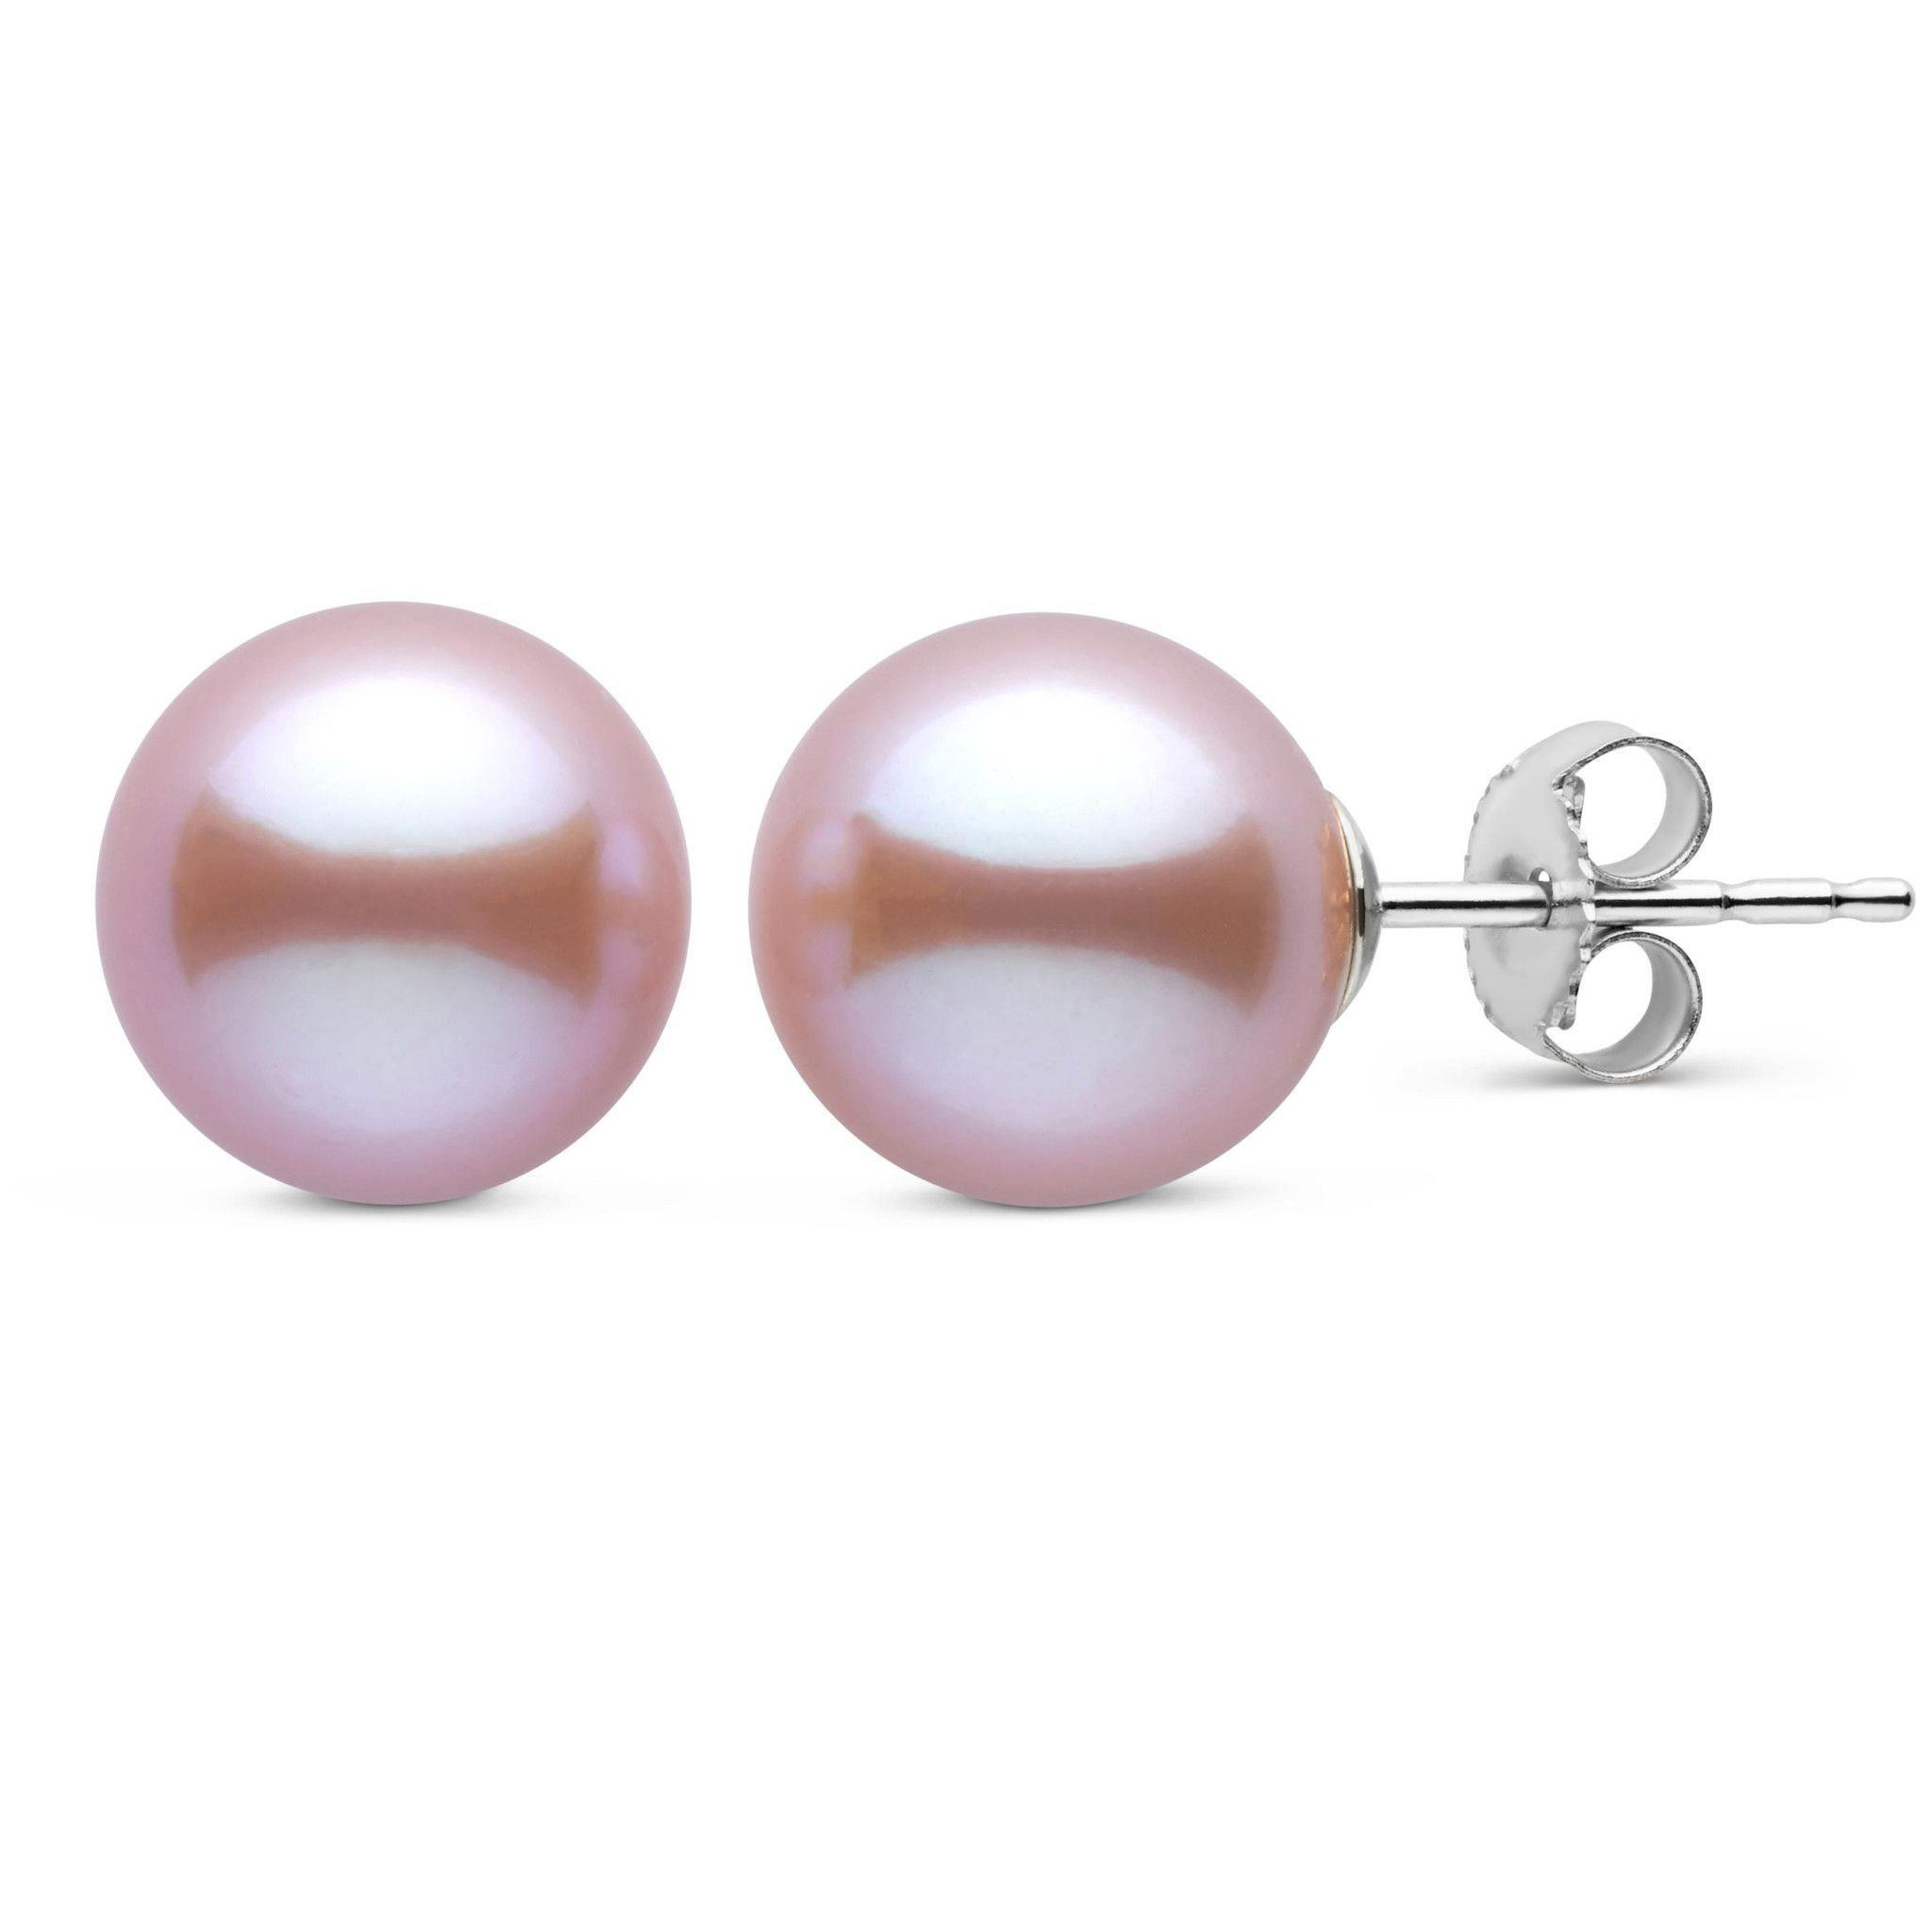 9.0-10.0 mm AAA Lavender Freshwater Pearl Stud Earrings